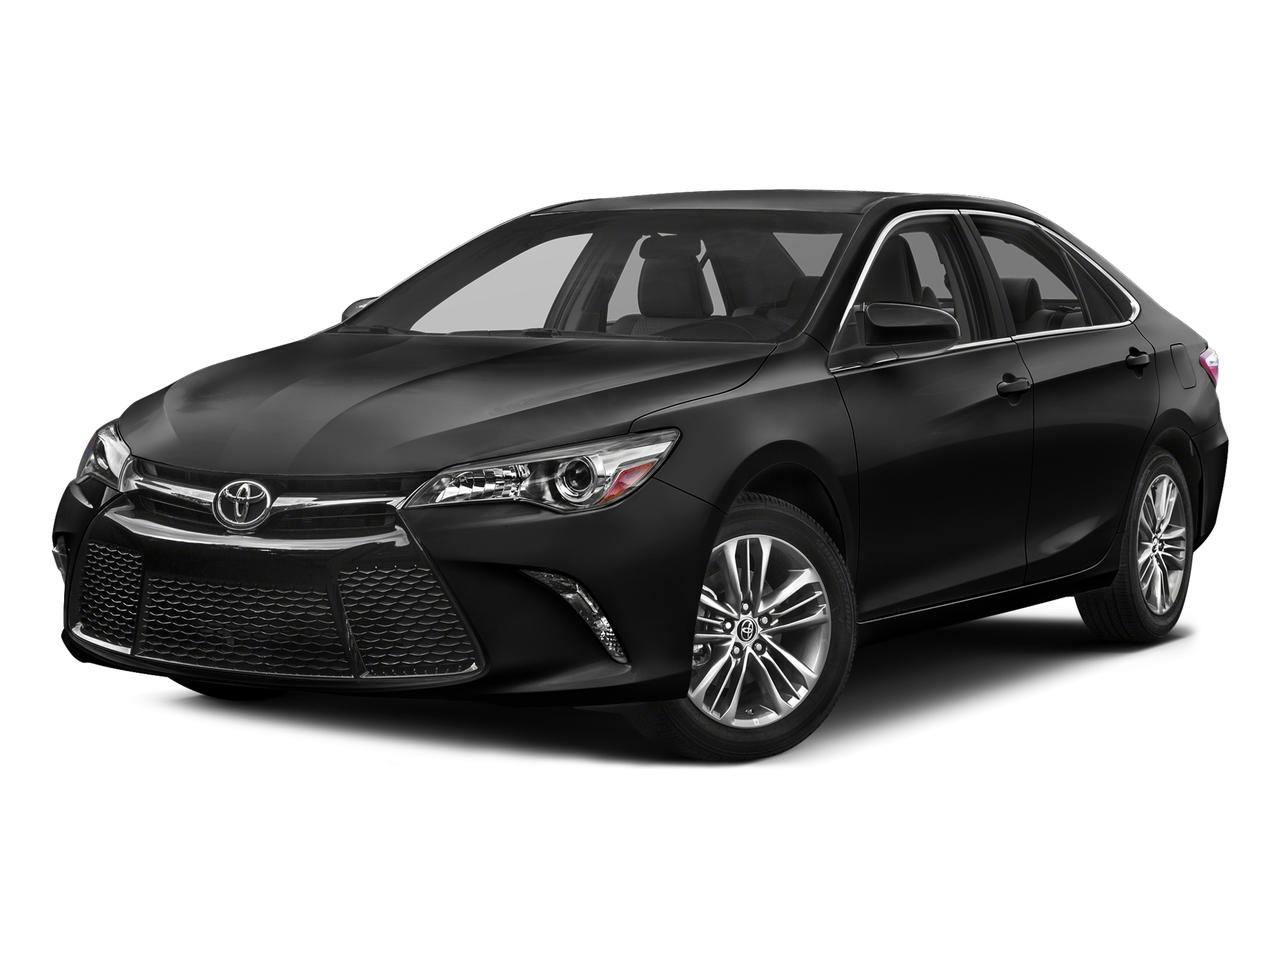 2017 Toyota Camry Vehicle Photo in Rockville, MD 20852